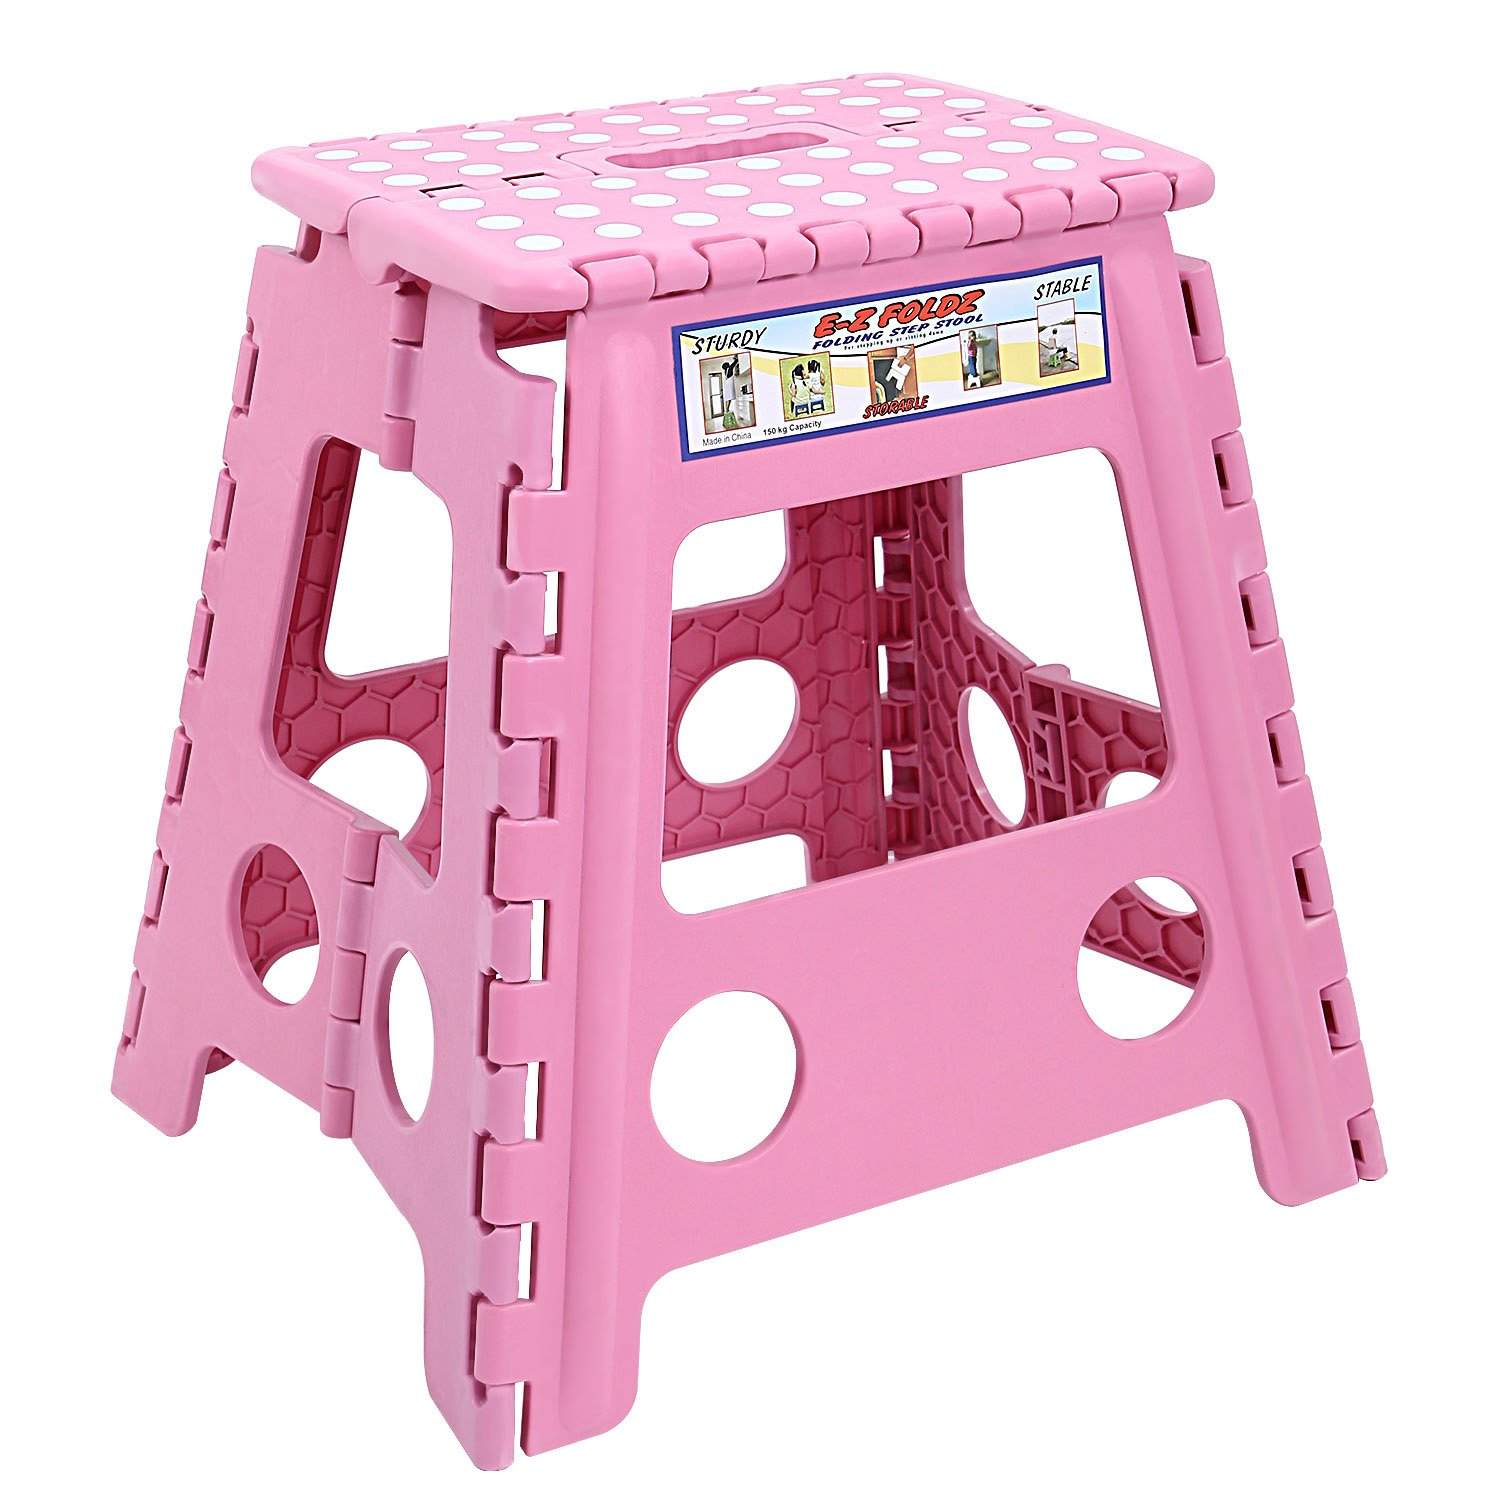 Maddott Super Strong Folding Step Stool for Adults and Kids,11x8.5x15inch, Holds up to 250 Lb, Pink